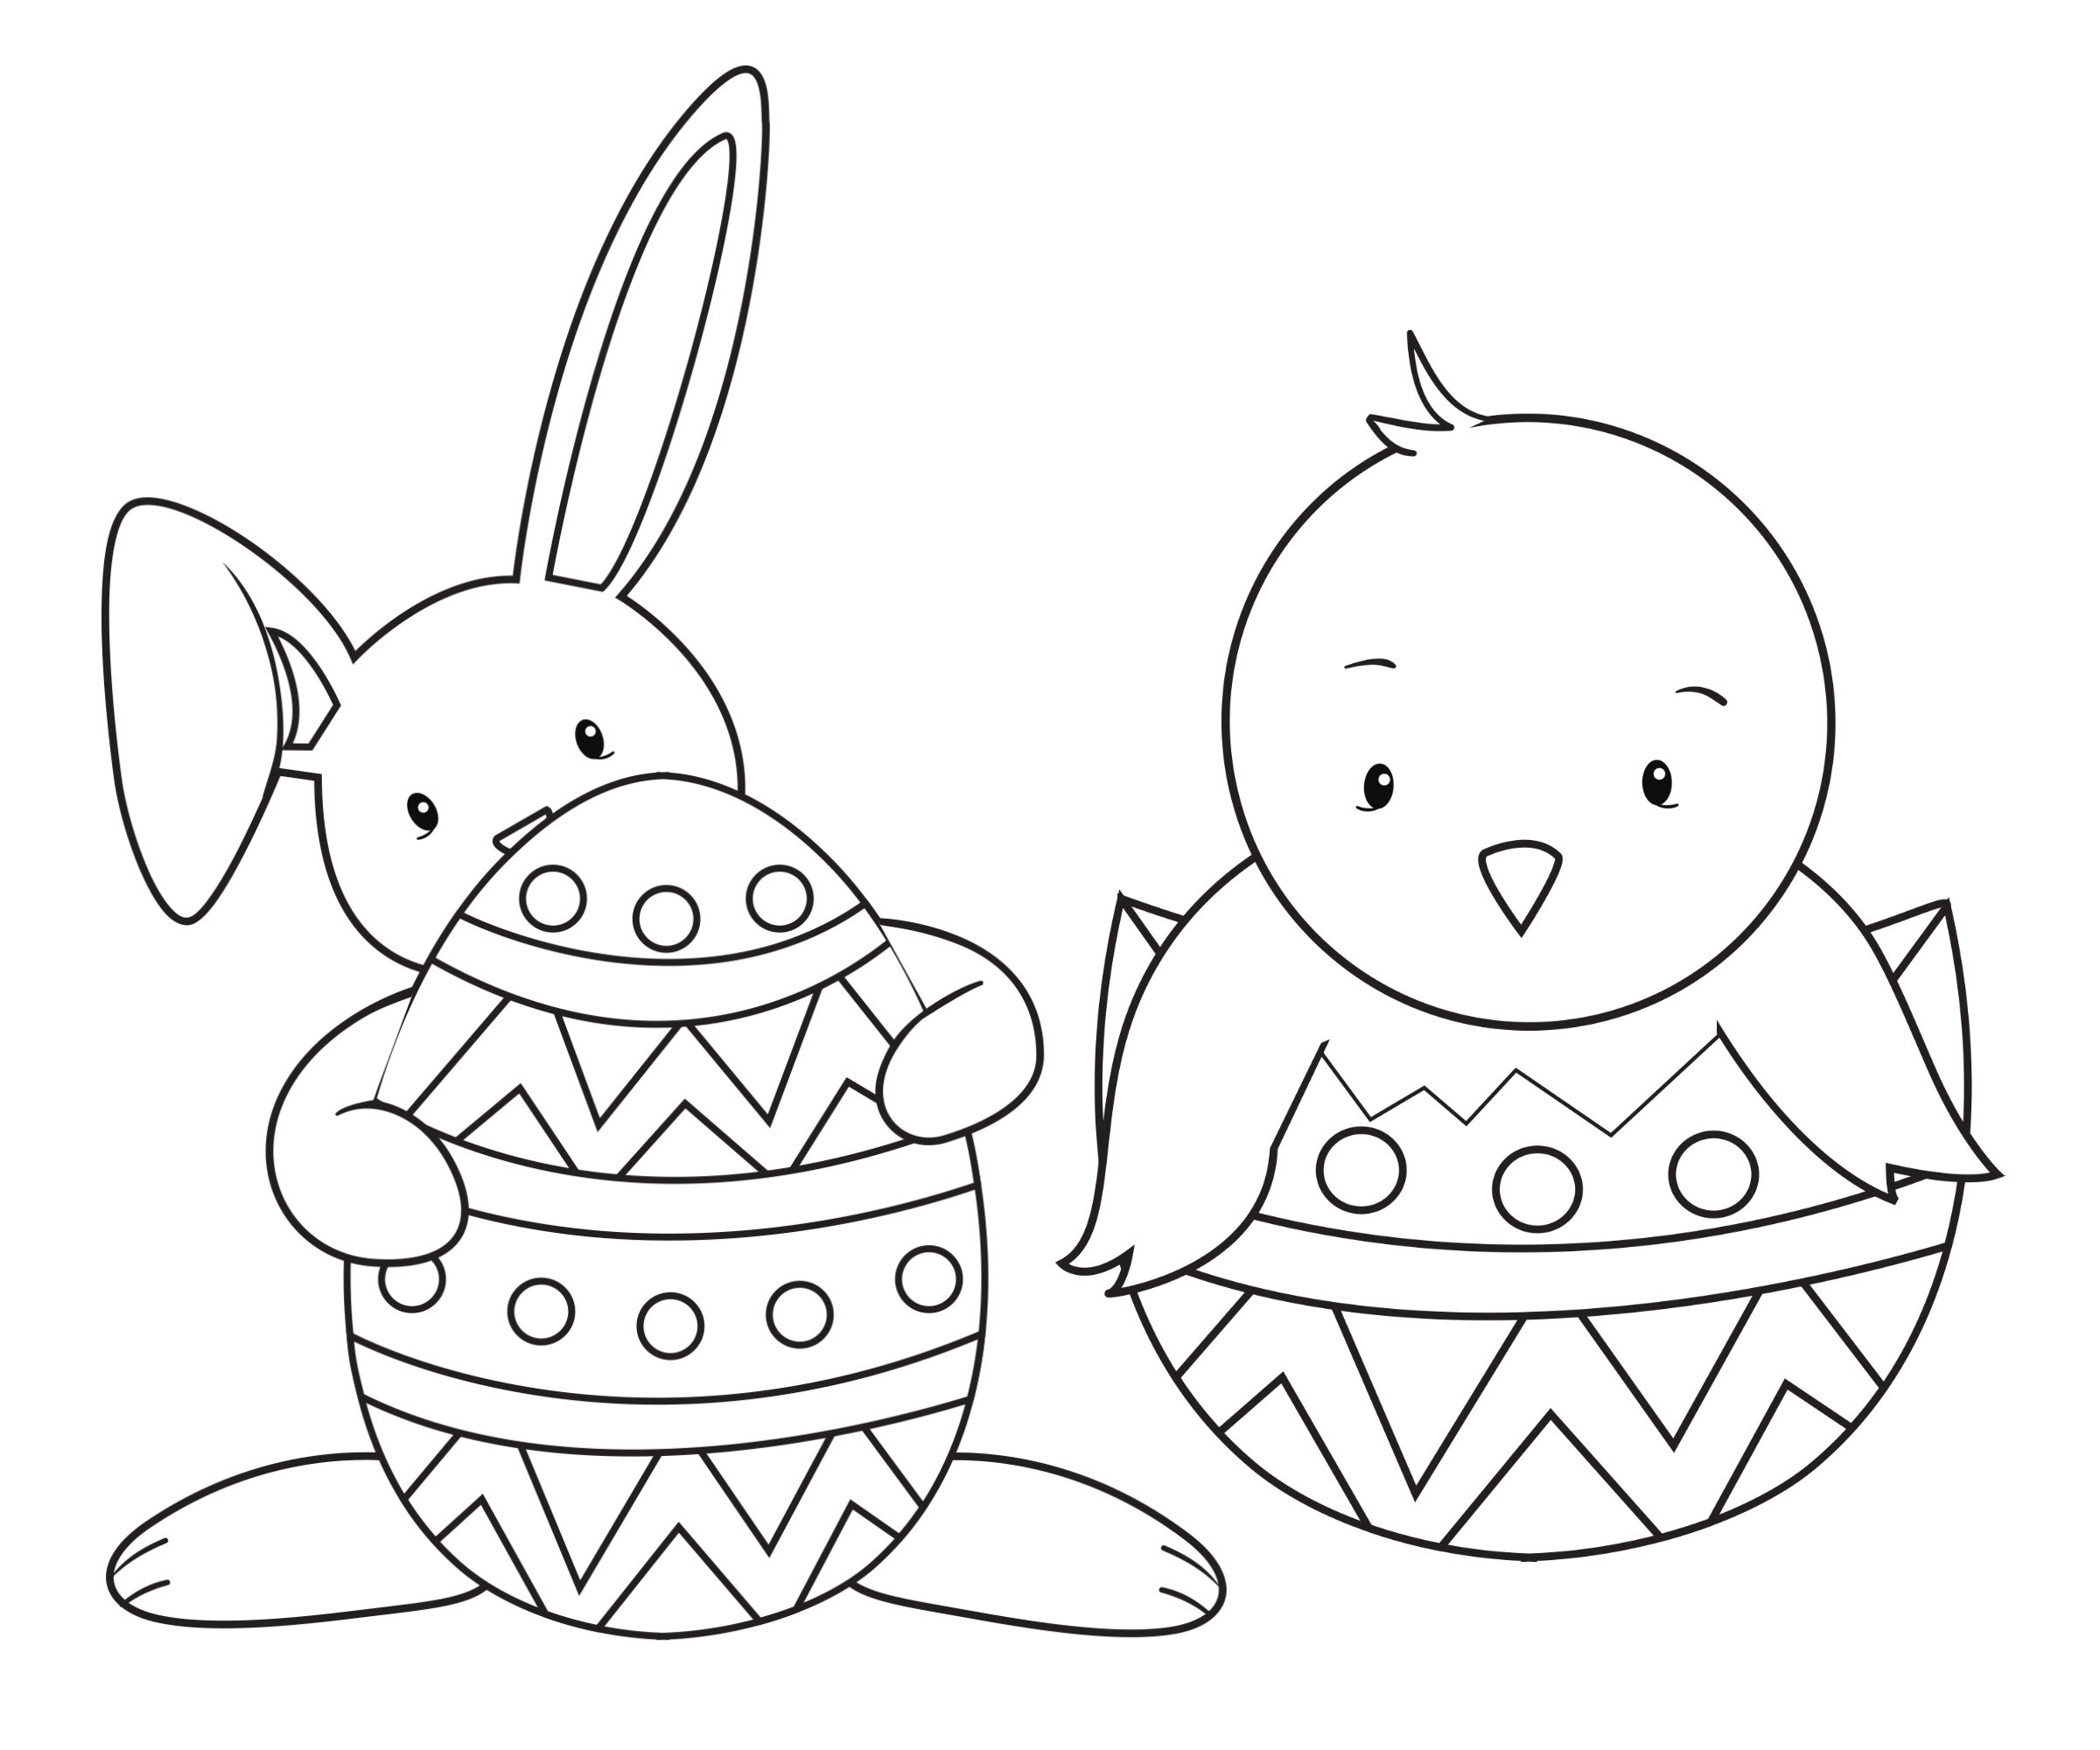 Easter Coloring Pages for Kids - Crazy Little Projects   free printable easter coloring pages for kindergarten